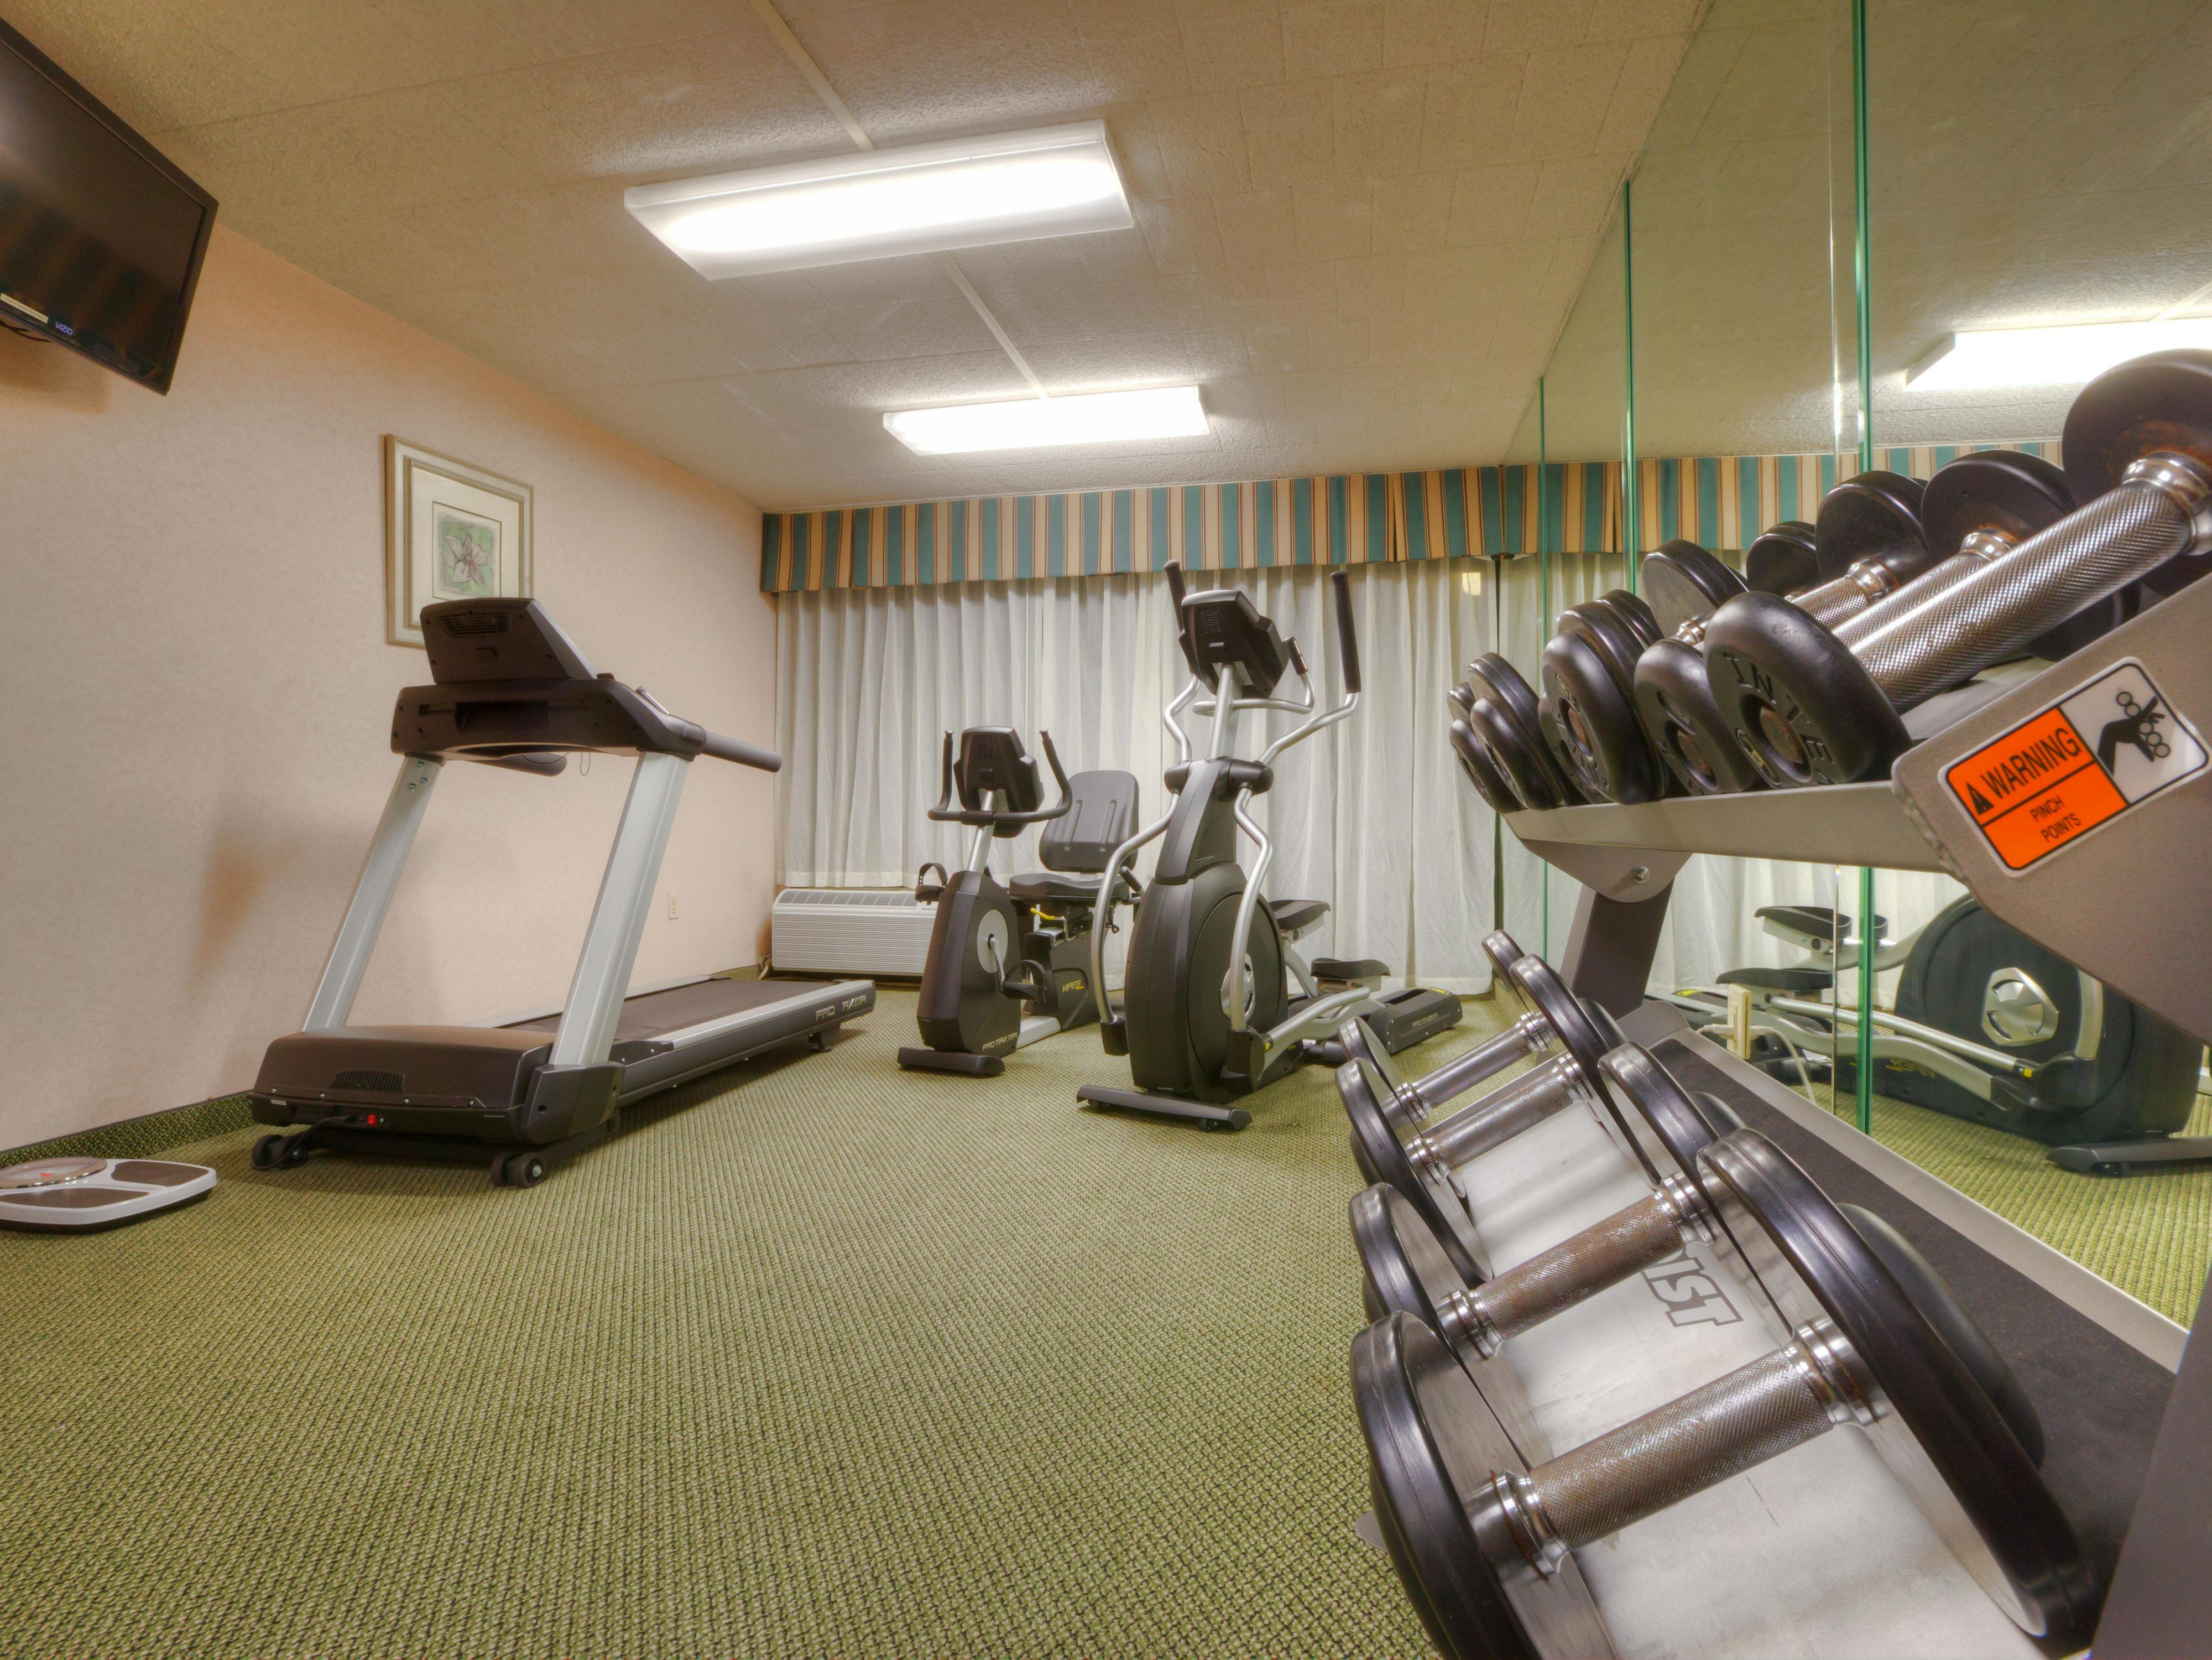 one of our Fitness centers, YMCA next door is as available.